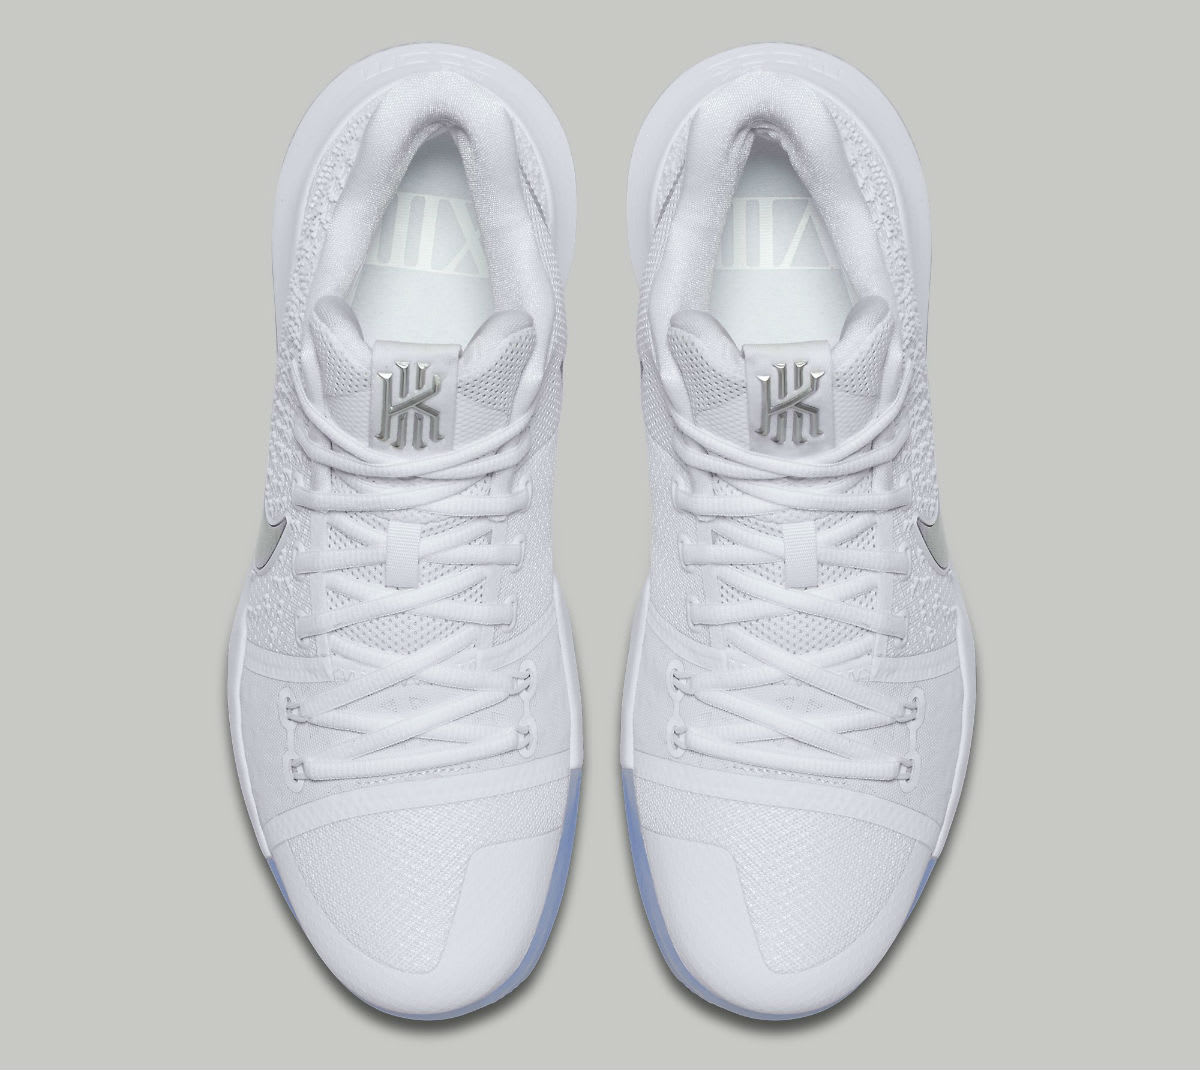 Nike kyrie 3 chrome release date 852395 103 sole collector nike kyrie 3 chrome release date top 852395 103 malvernweather Gallery